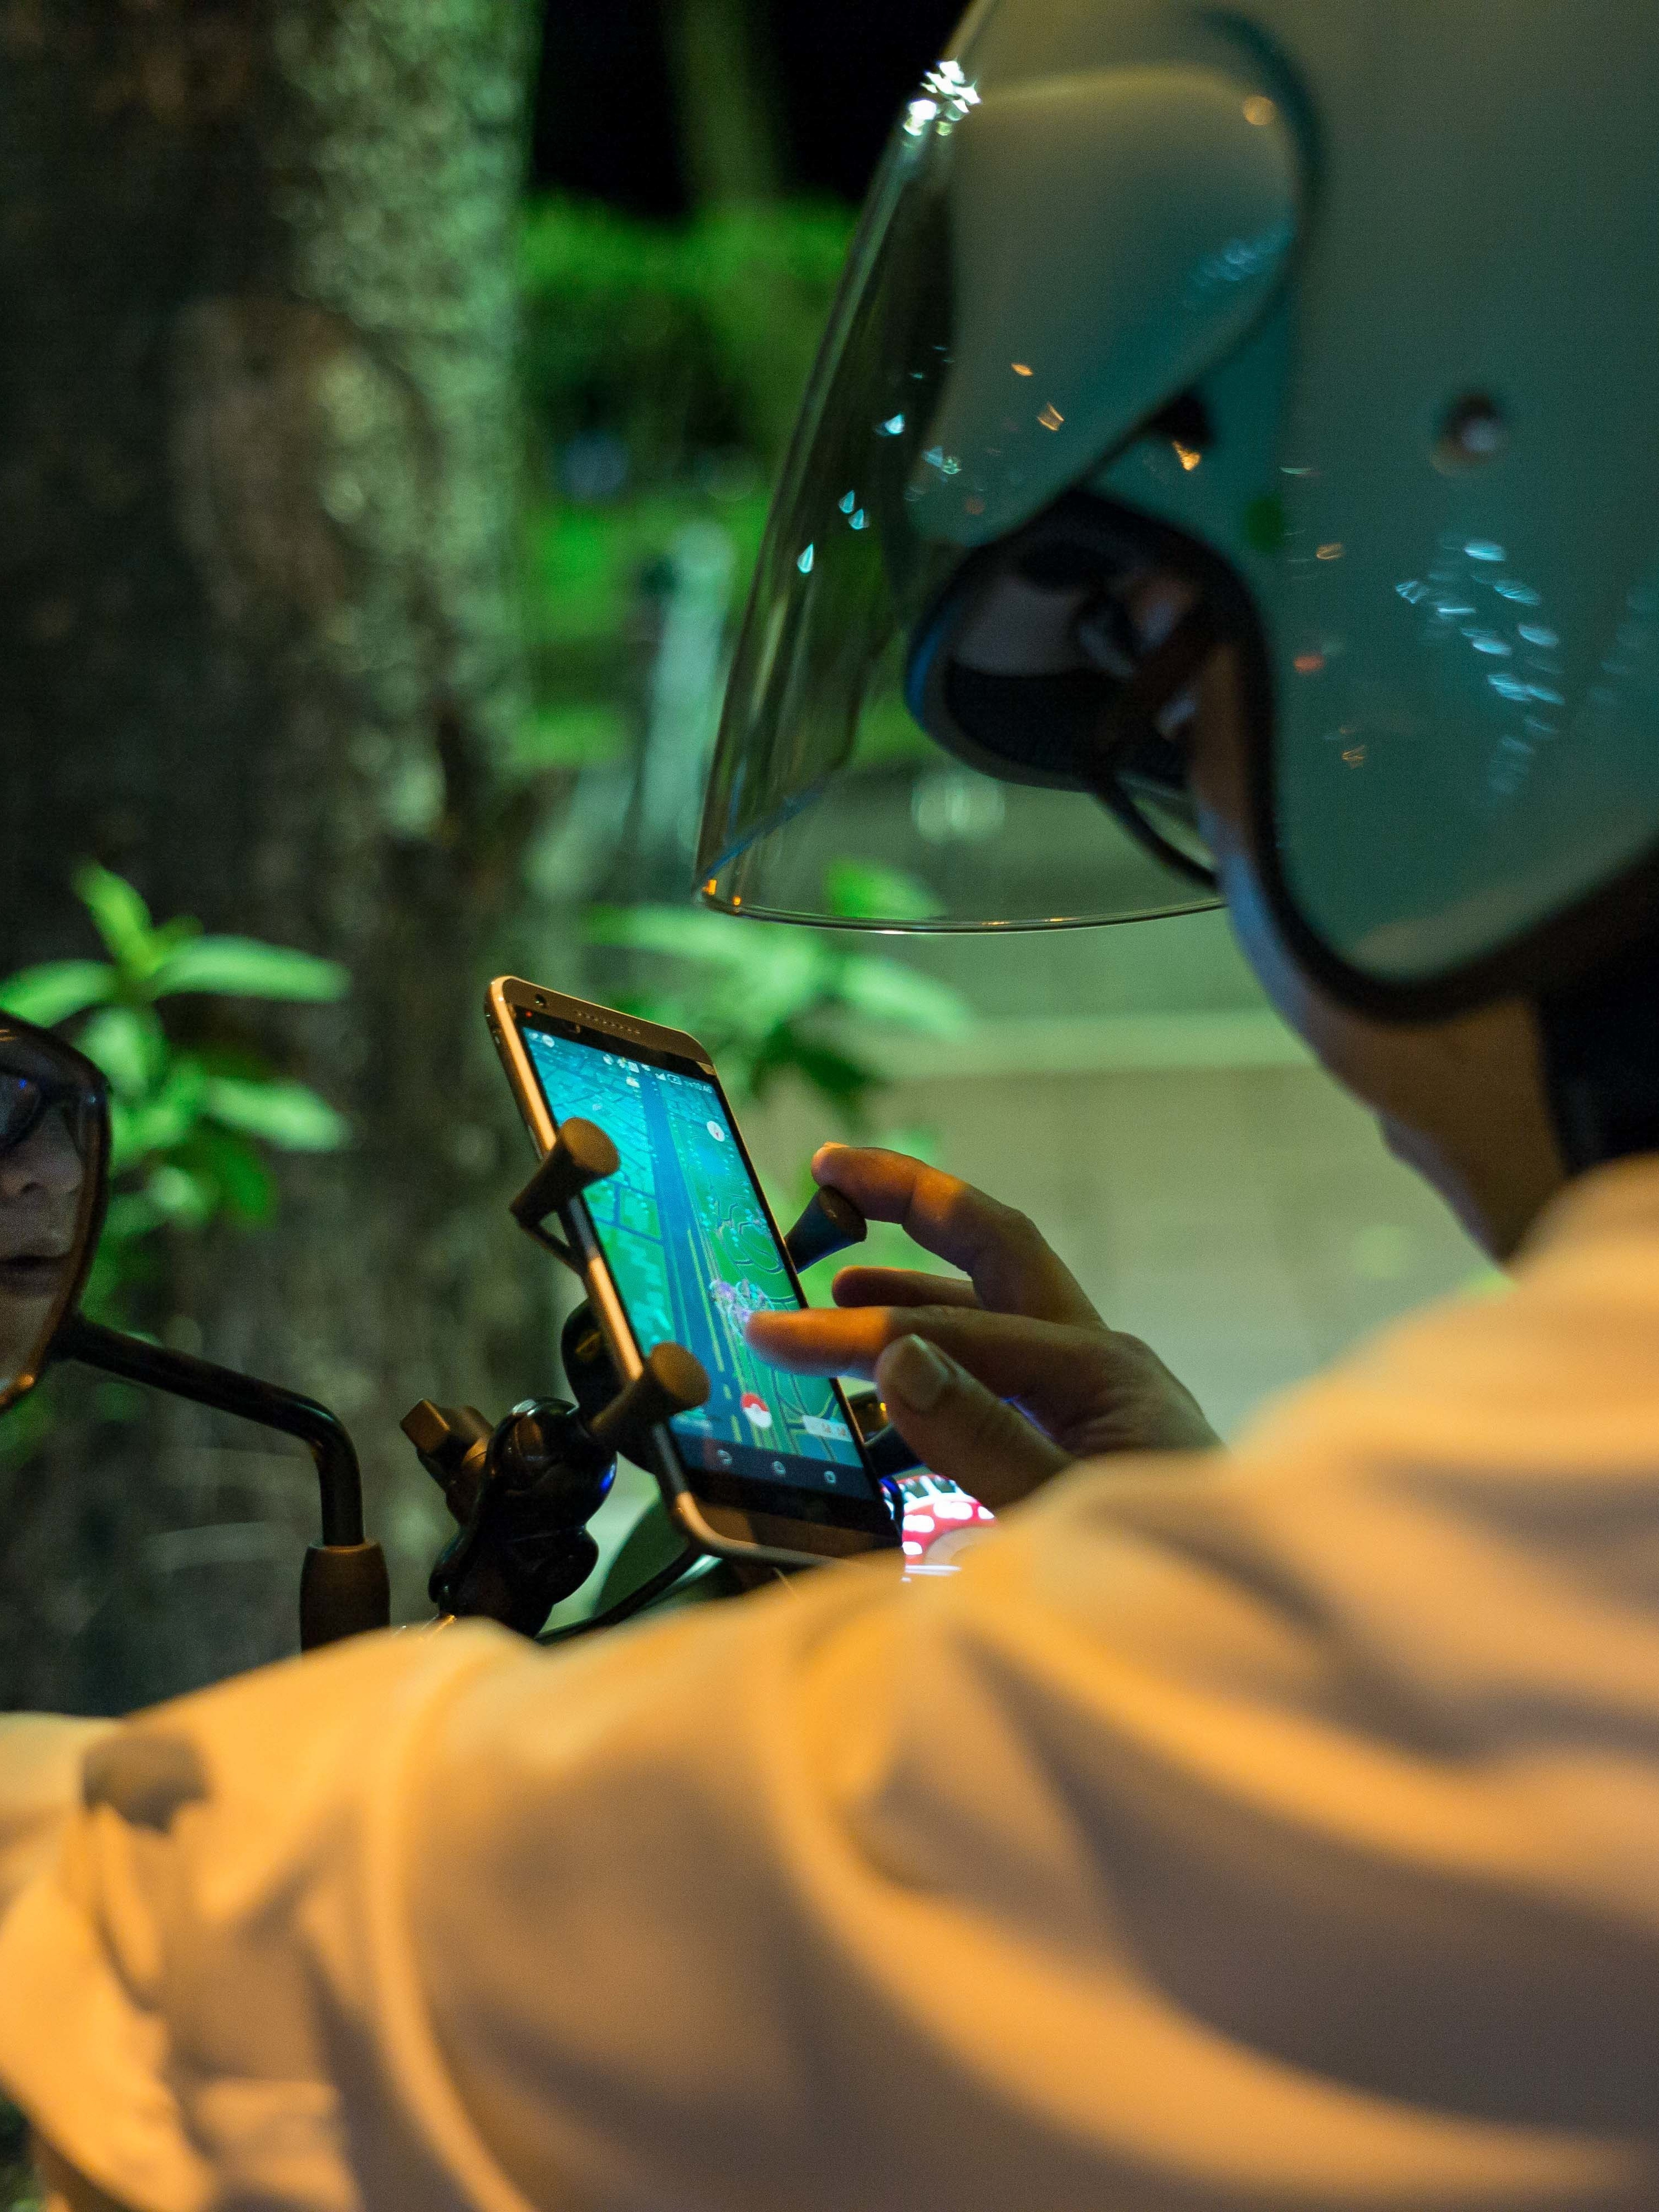 TAIPEI, TAIWAN - AUGUST 07:  Motorcyclists play Pokemon Go  on their smartphones on August 7, 2016 in Taipei, Taiwan. 'Pokemon Go,' which has been a smash-hit across the globe was launched in Taiwan on 6th August. Since its global launch, the mobile game has been an unexpected megahit among users who have taken to the streets with their smartphones.  (Photo by Billy H.C. Kwok/Getty Images)